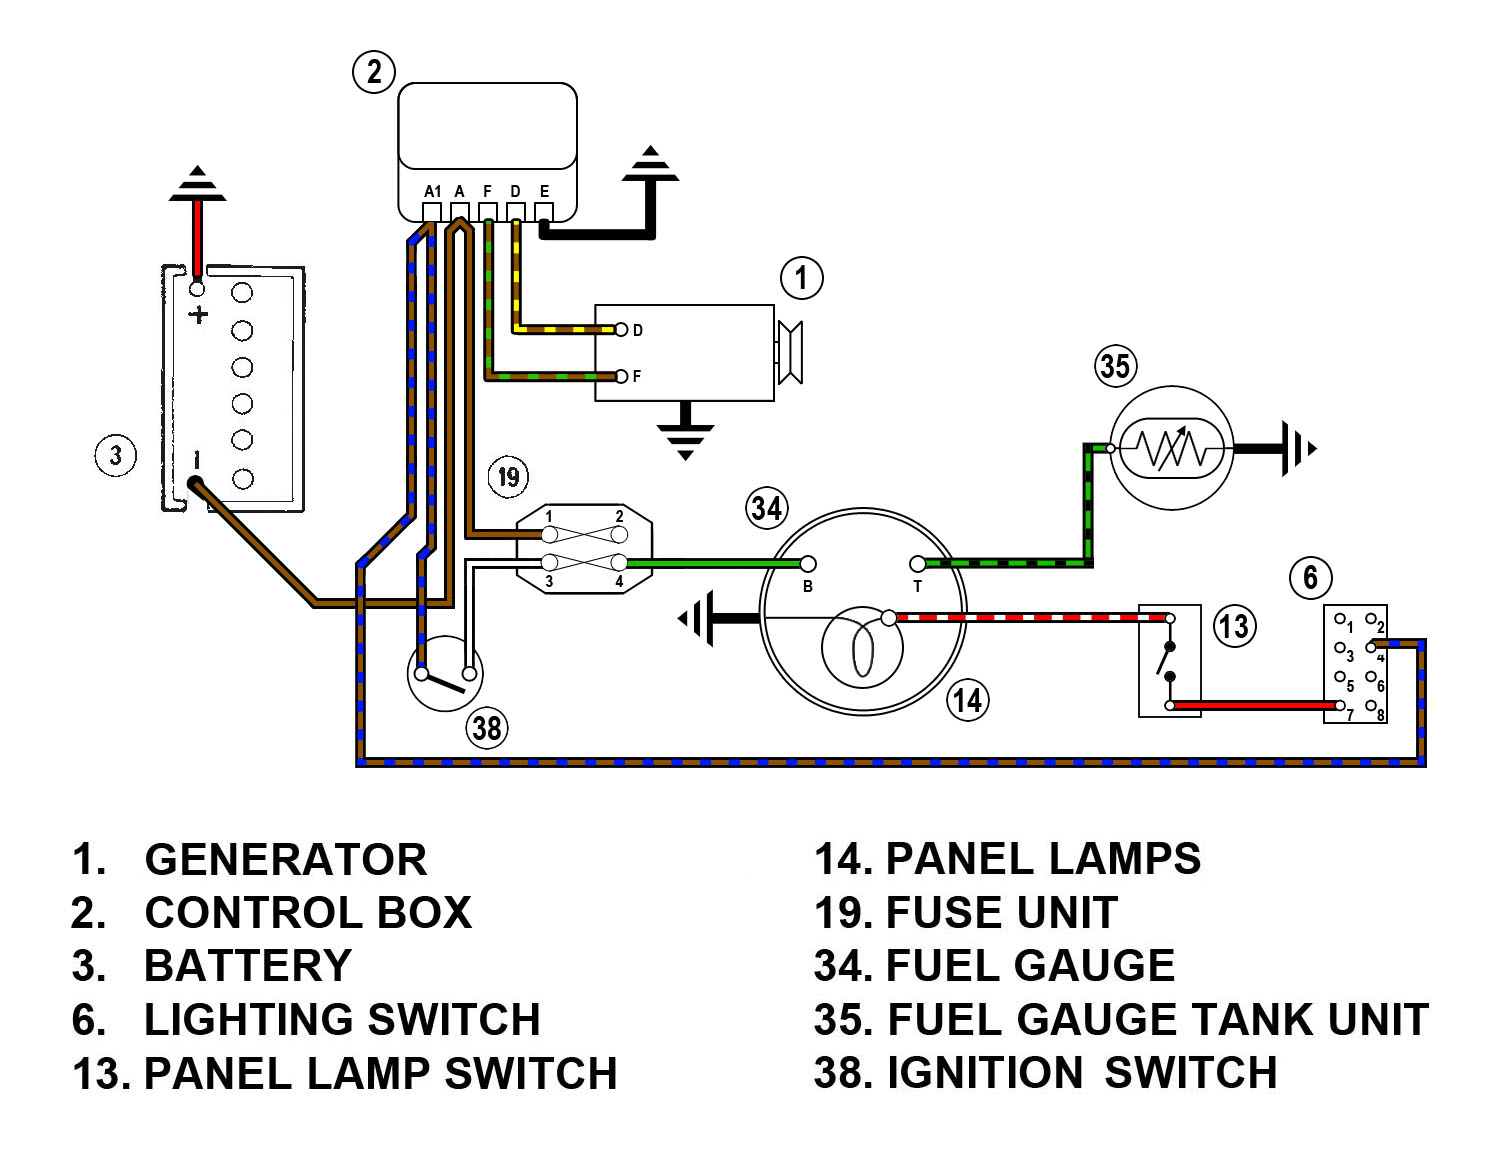 Gmc Safari Fuel Gauge Wiring Diagram Wire Center 1993 Fuse Box Diagrams All Kind Of U2022 Rh Investatlanta Co Truck